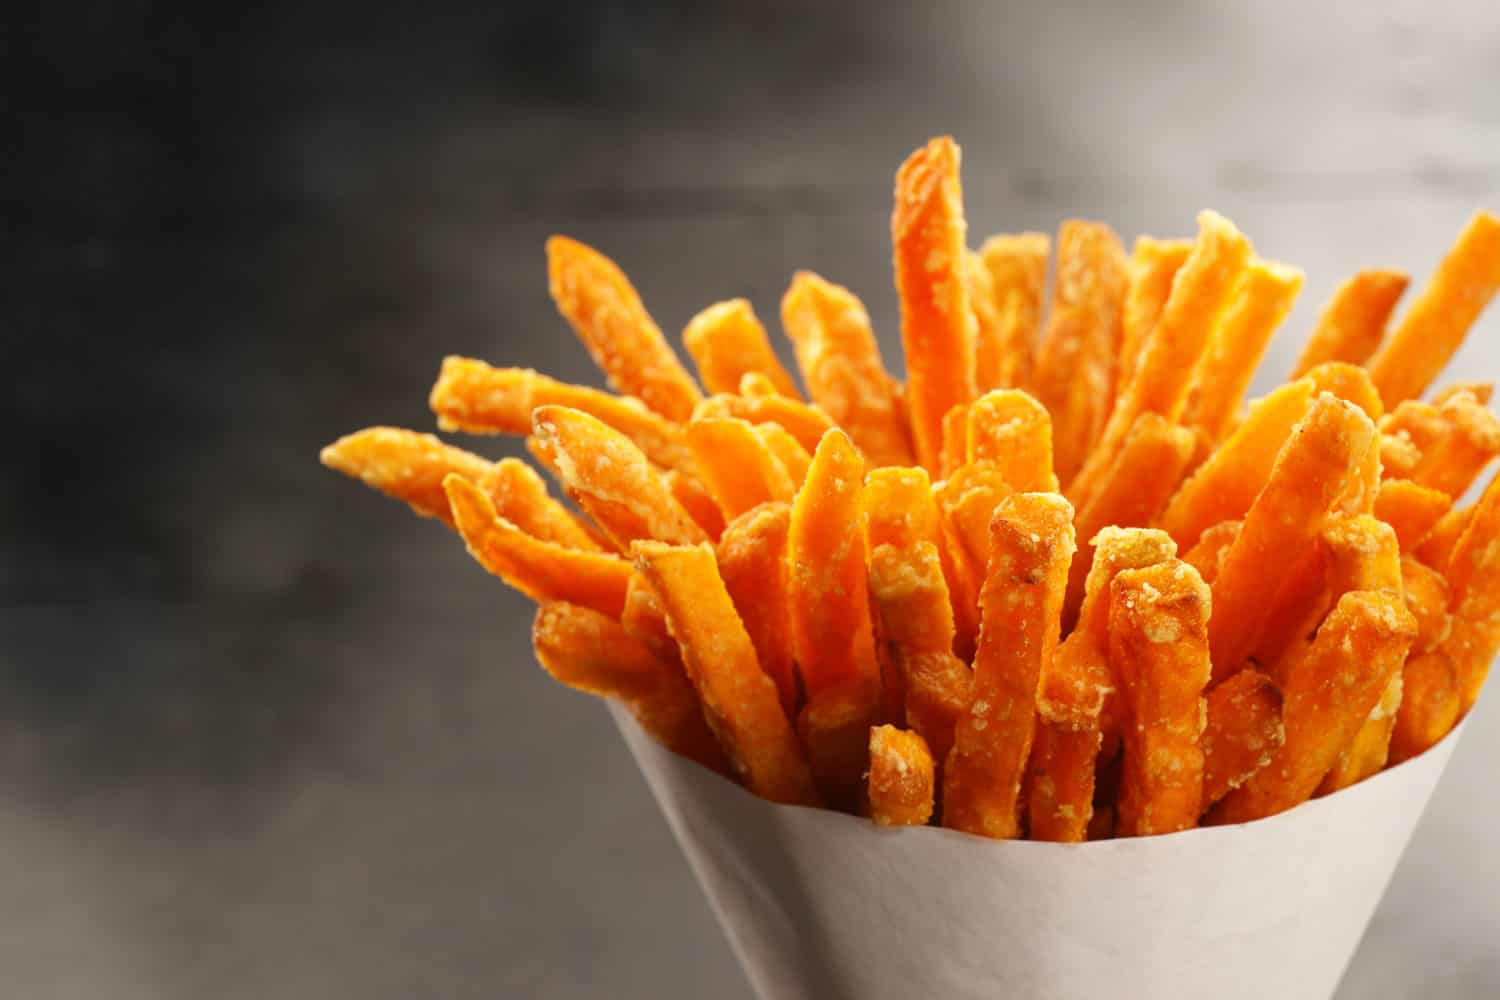 Delicious deep fried french fries